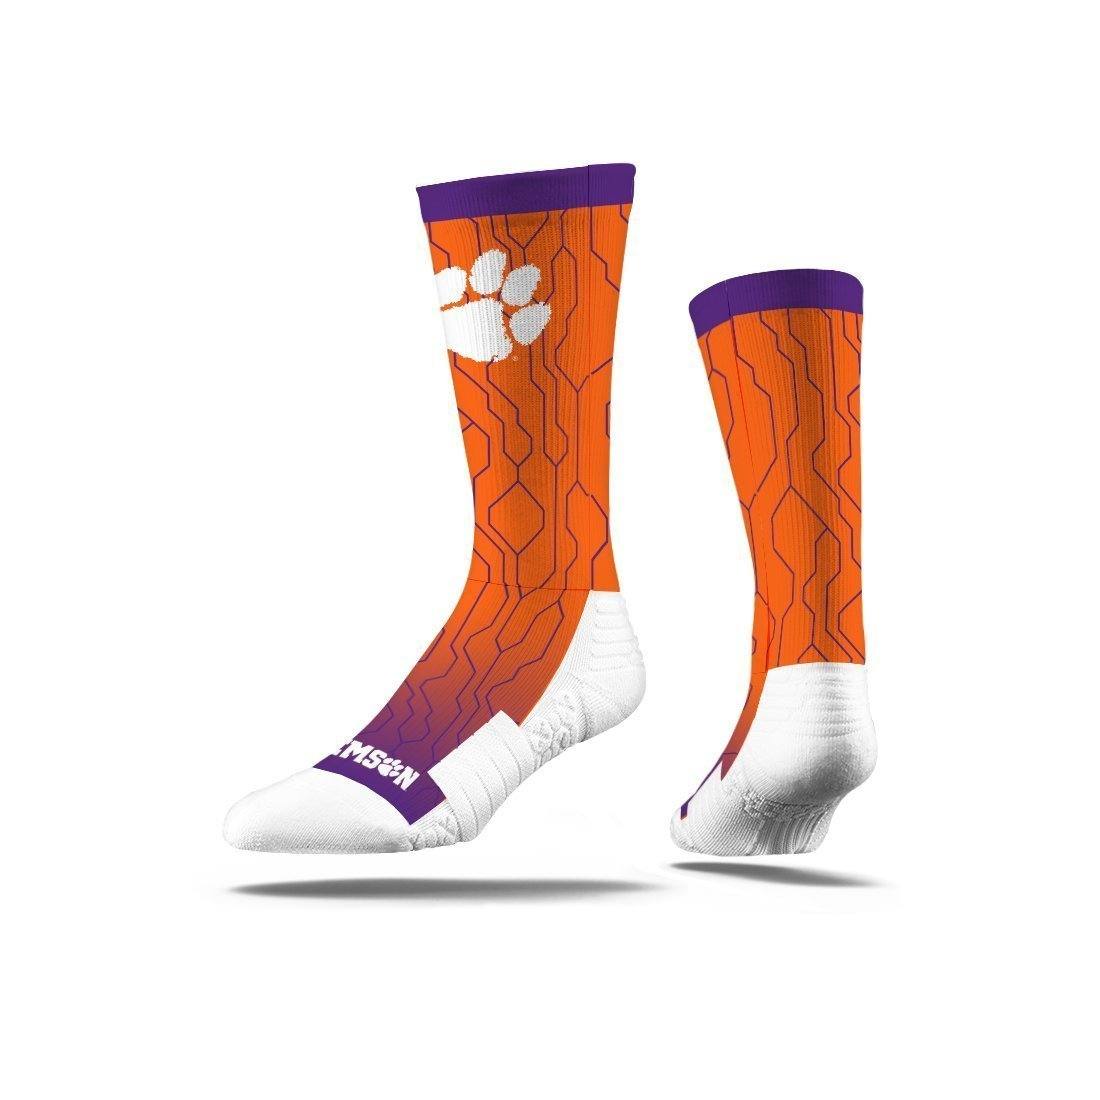 Strideline Clemson Technical Crew Socks - Mr. Knickerbocker